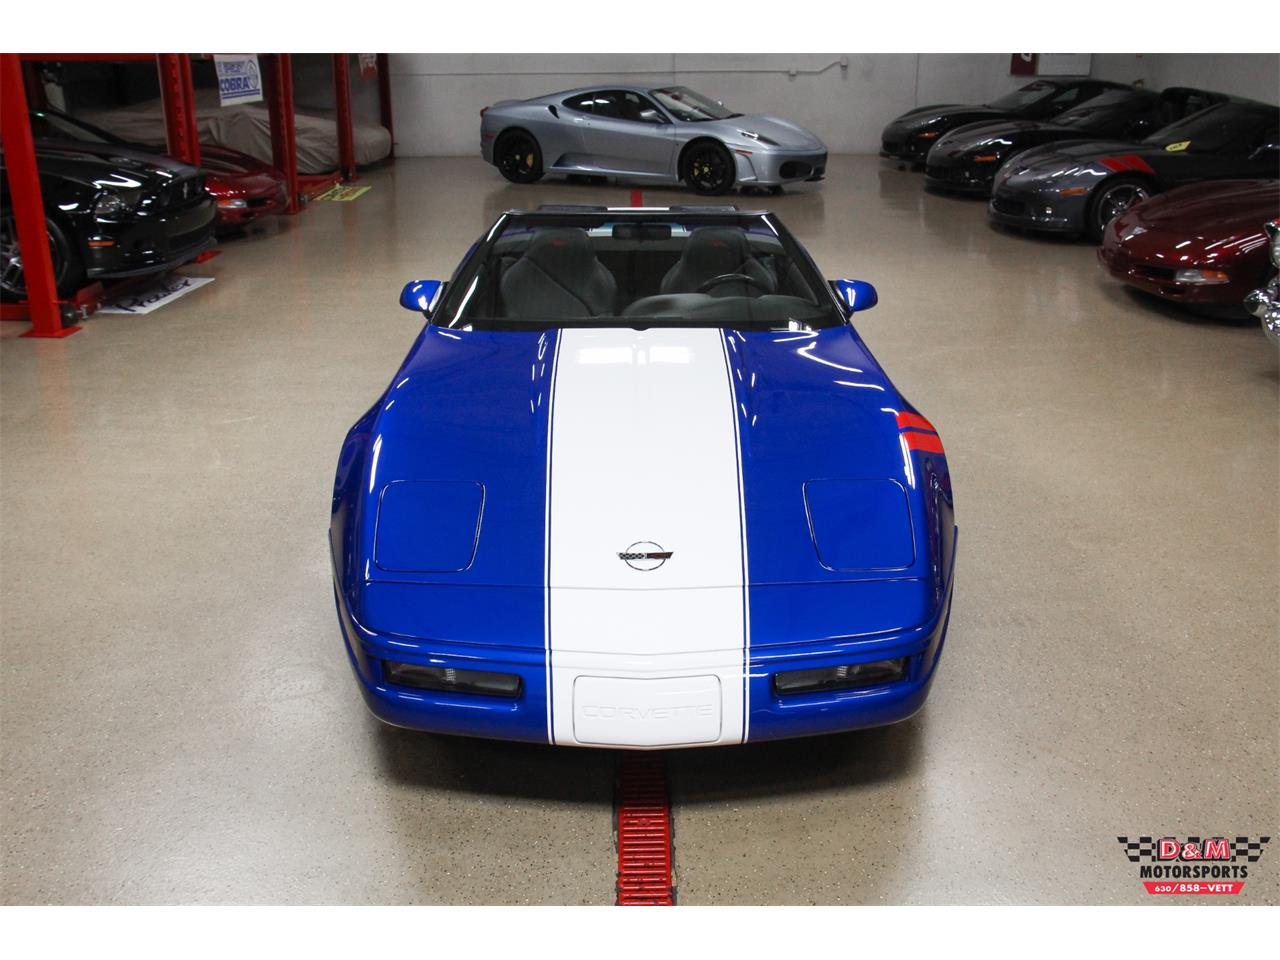 Large Picture of '96 Chevrolet Corvette located in Illinois - $44,995.00 - LV9Z